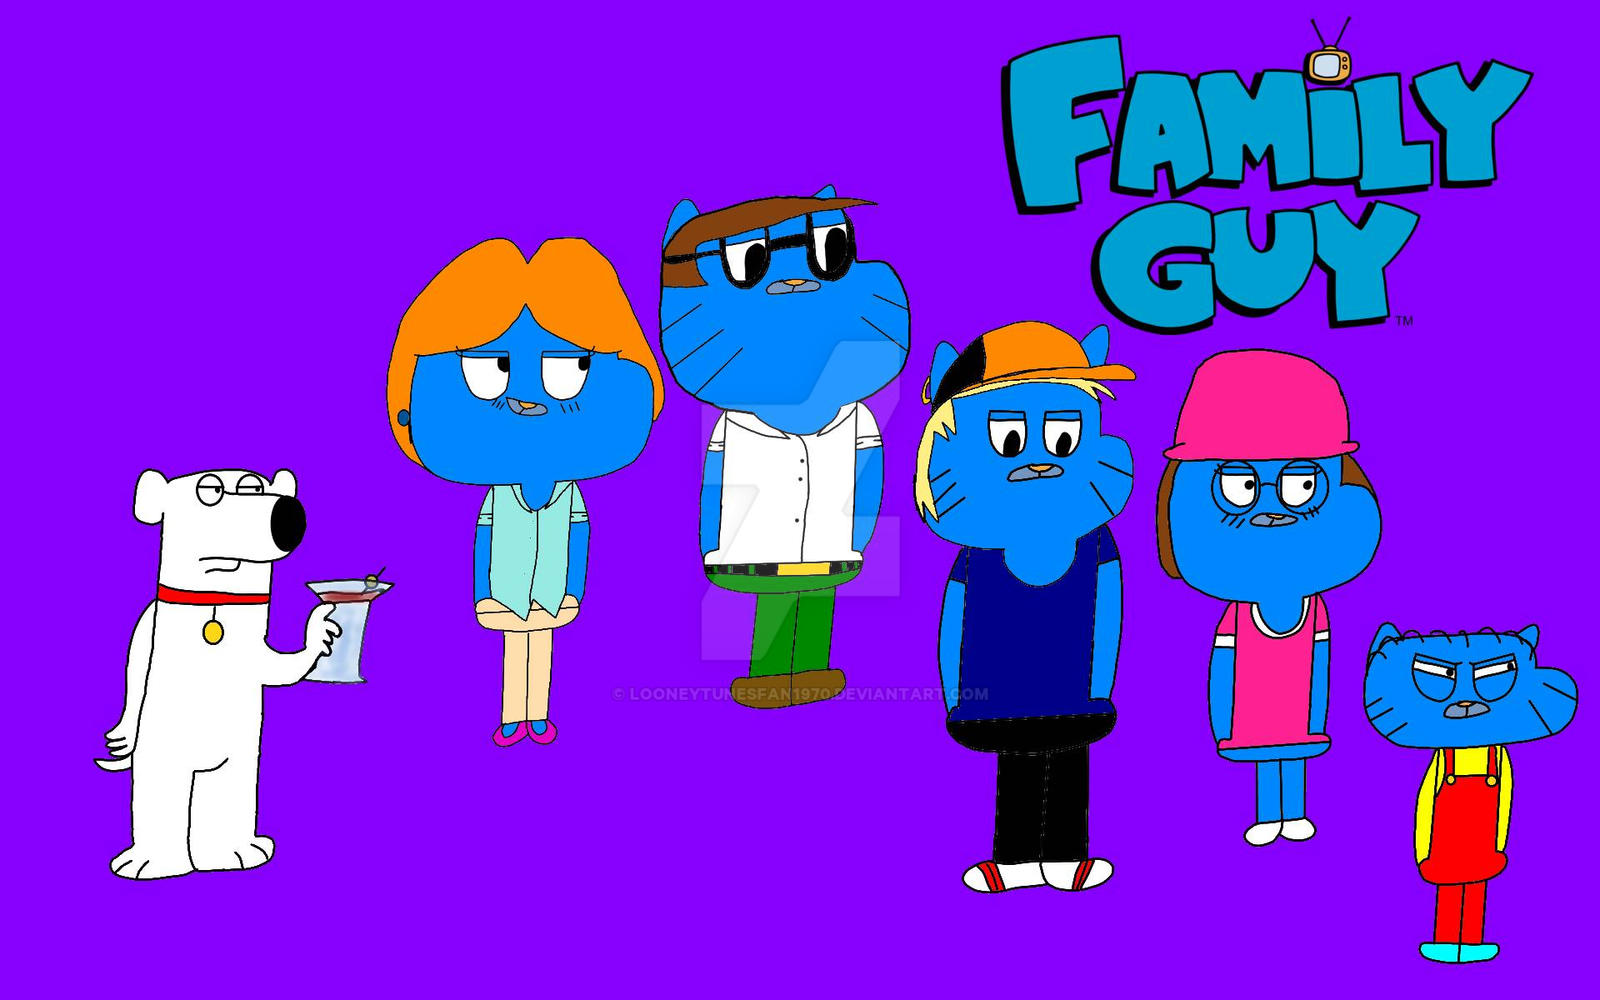 Family Guy Gumball Style 569133324 on tv animal characters